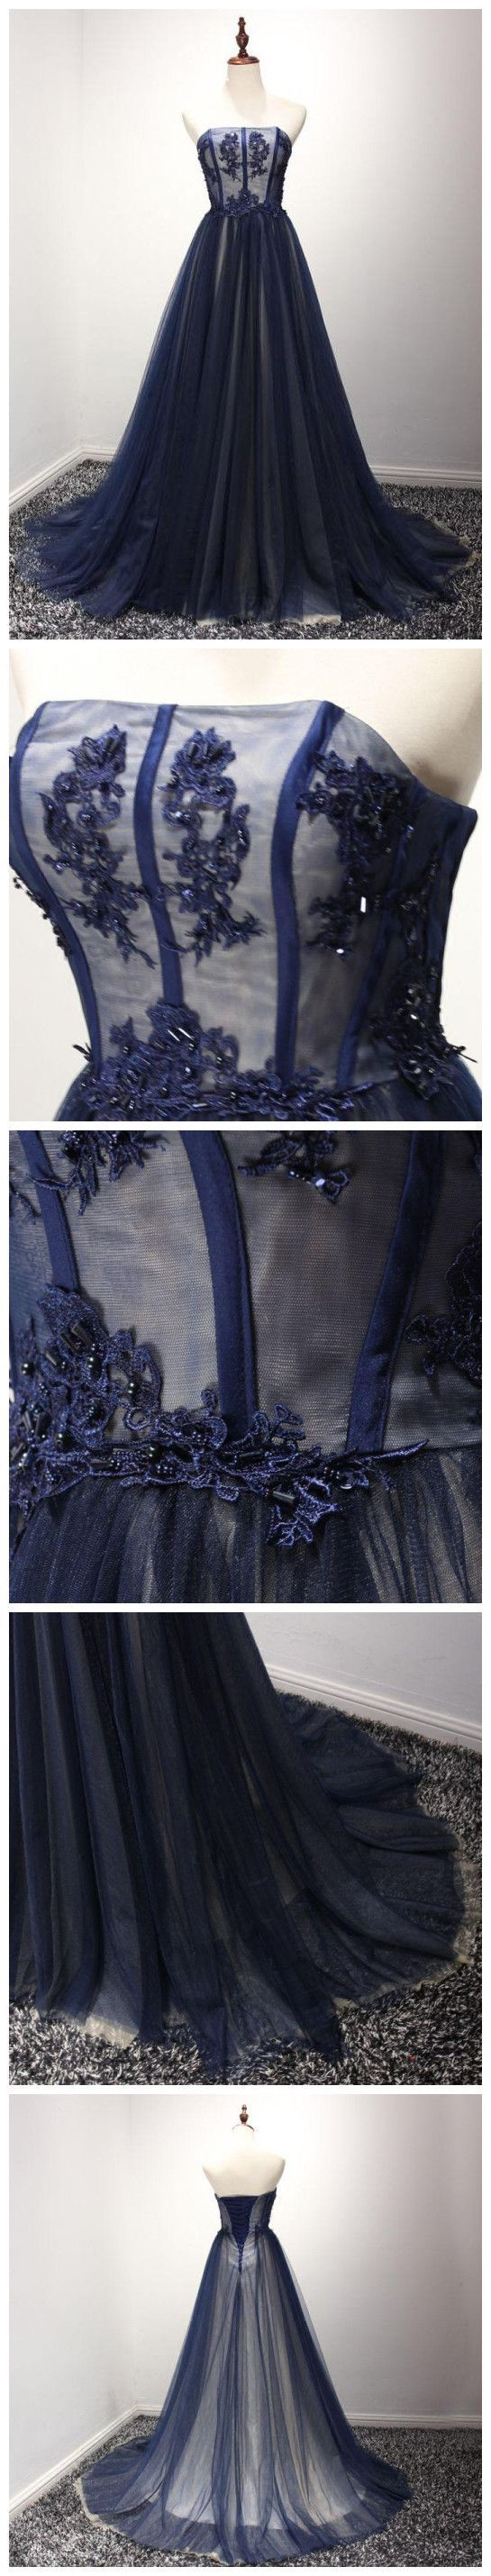 Stunning Prom Dress Navy Blue Prom Evening Dressball Gown Prom